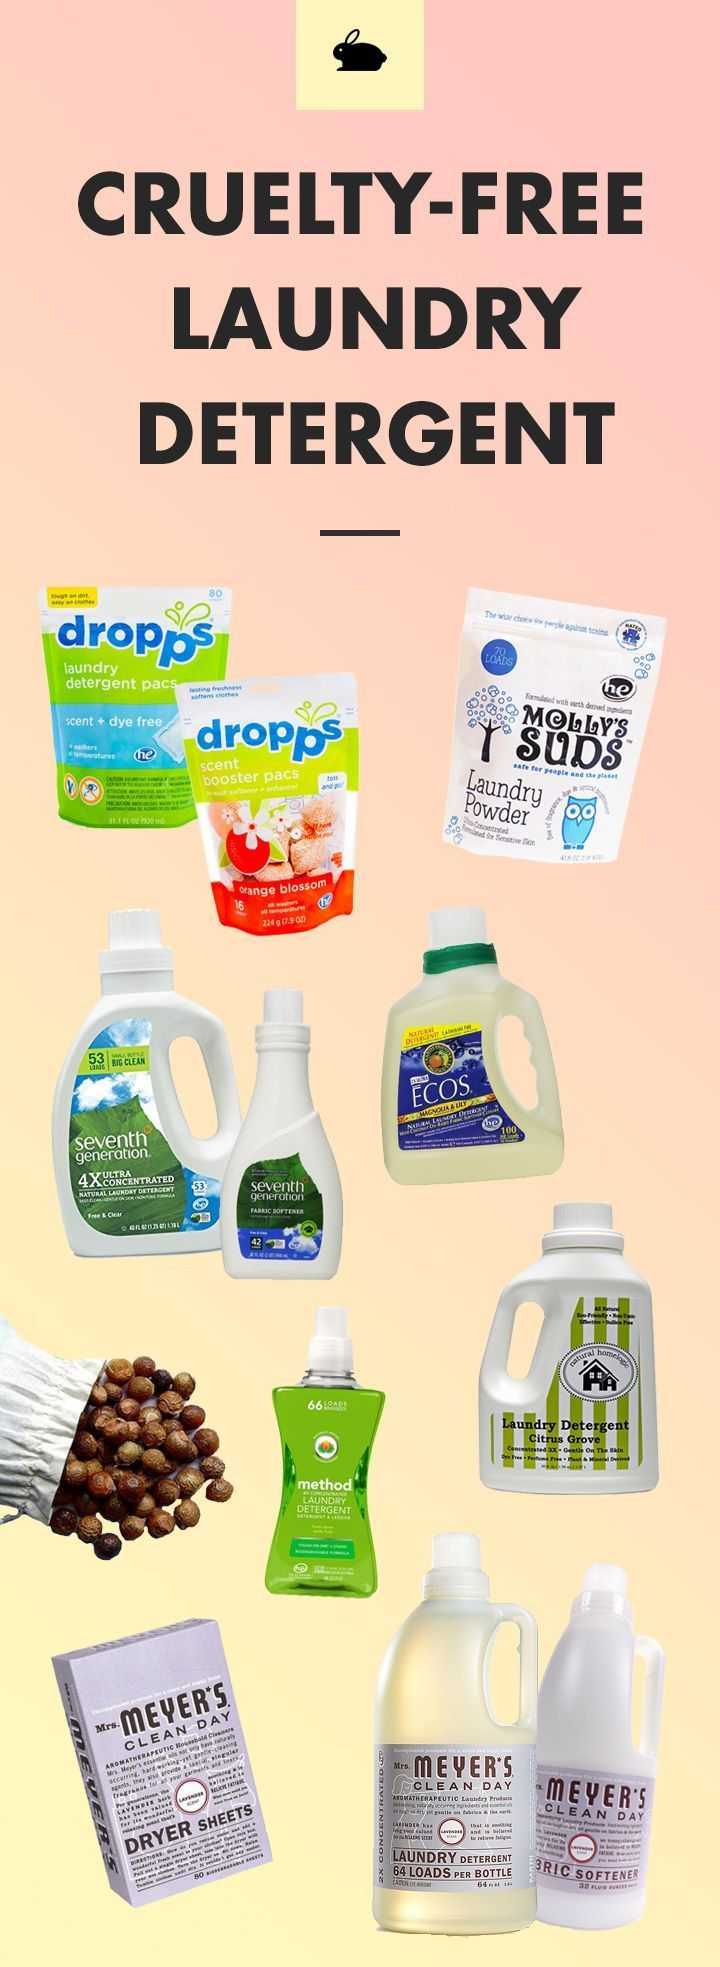 Choose household products that aren't tested on animals.